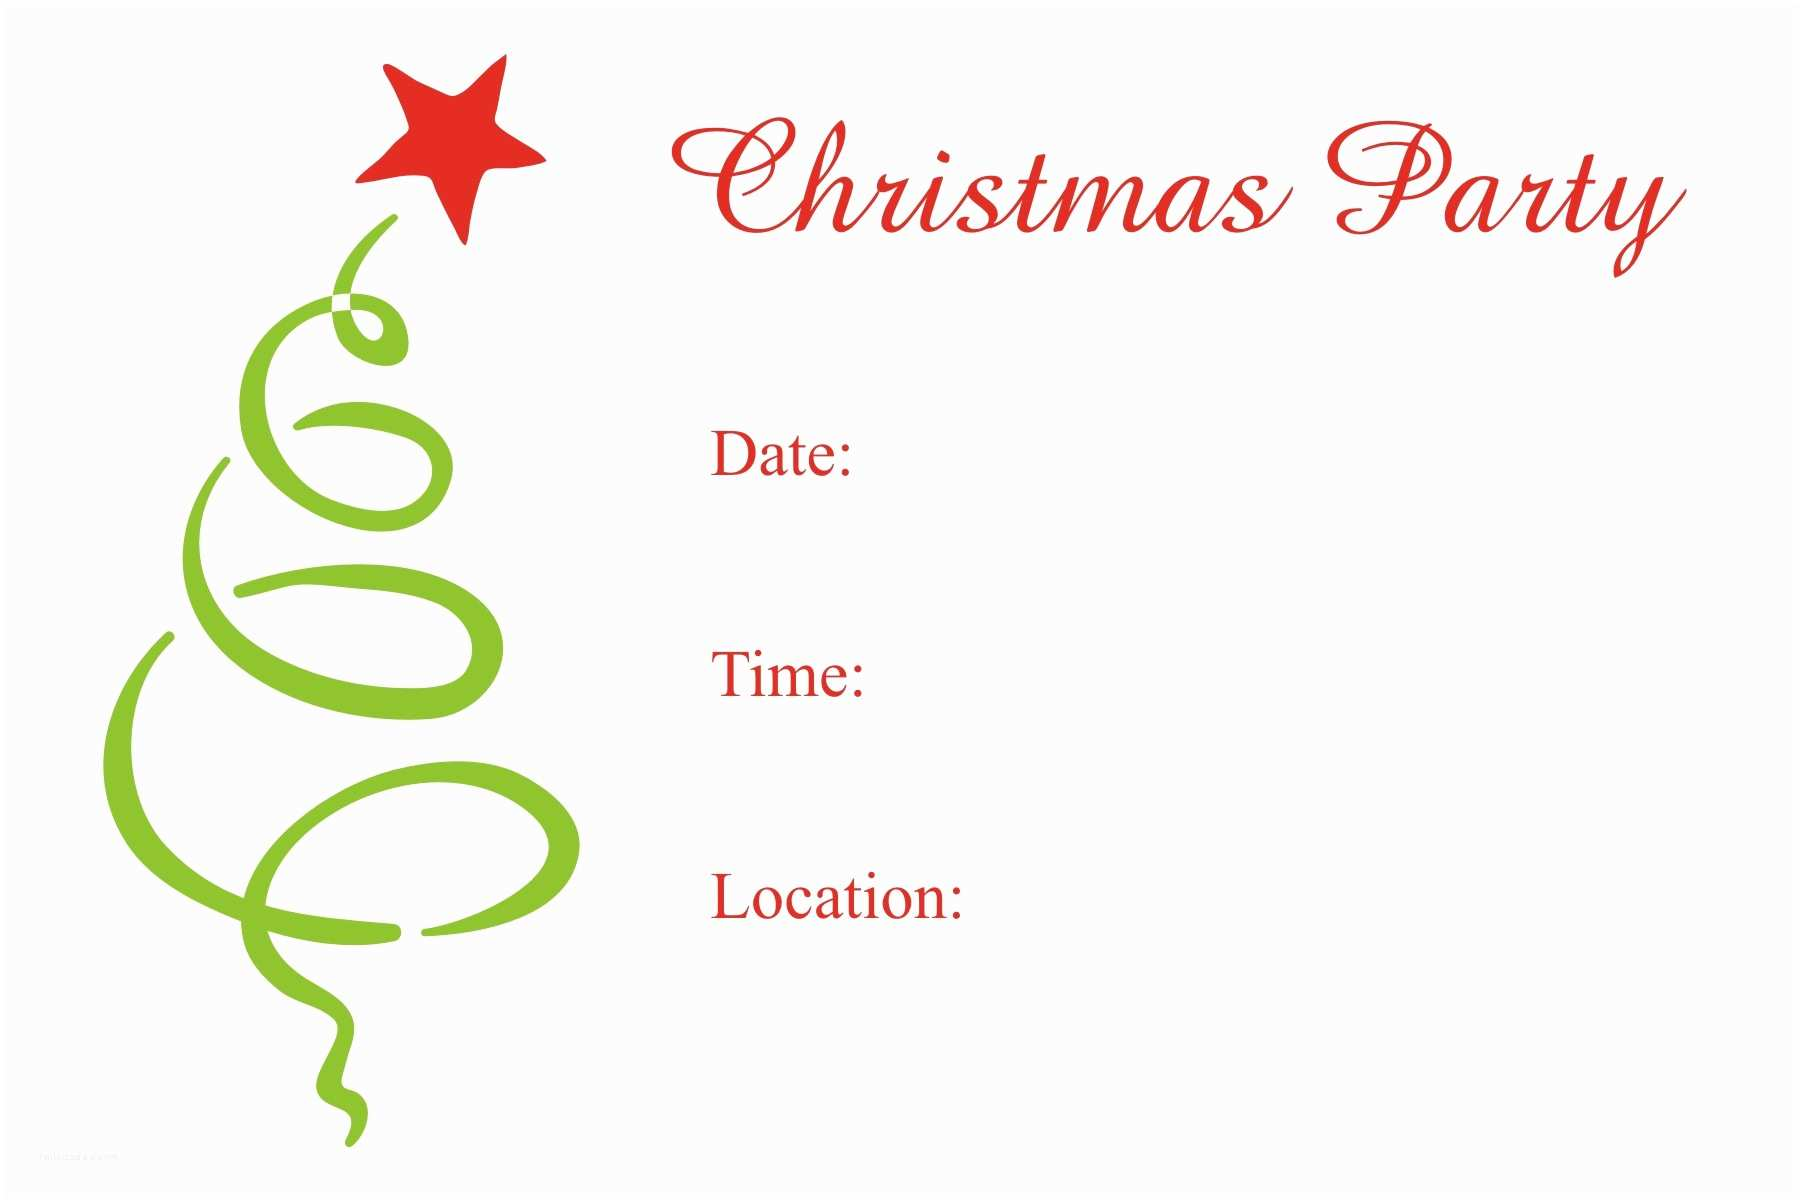 Holiday Party Invitation Christmas Party Free Printable Holiday Invitation